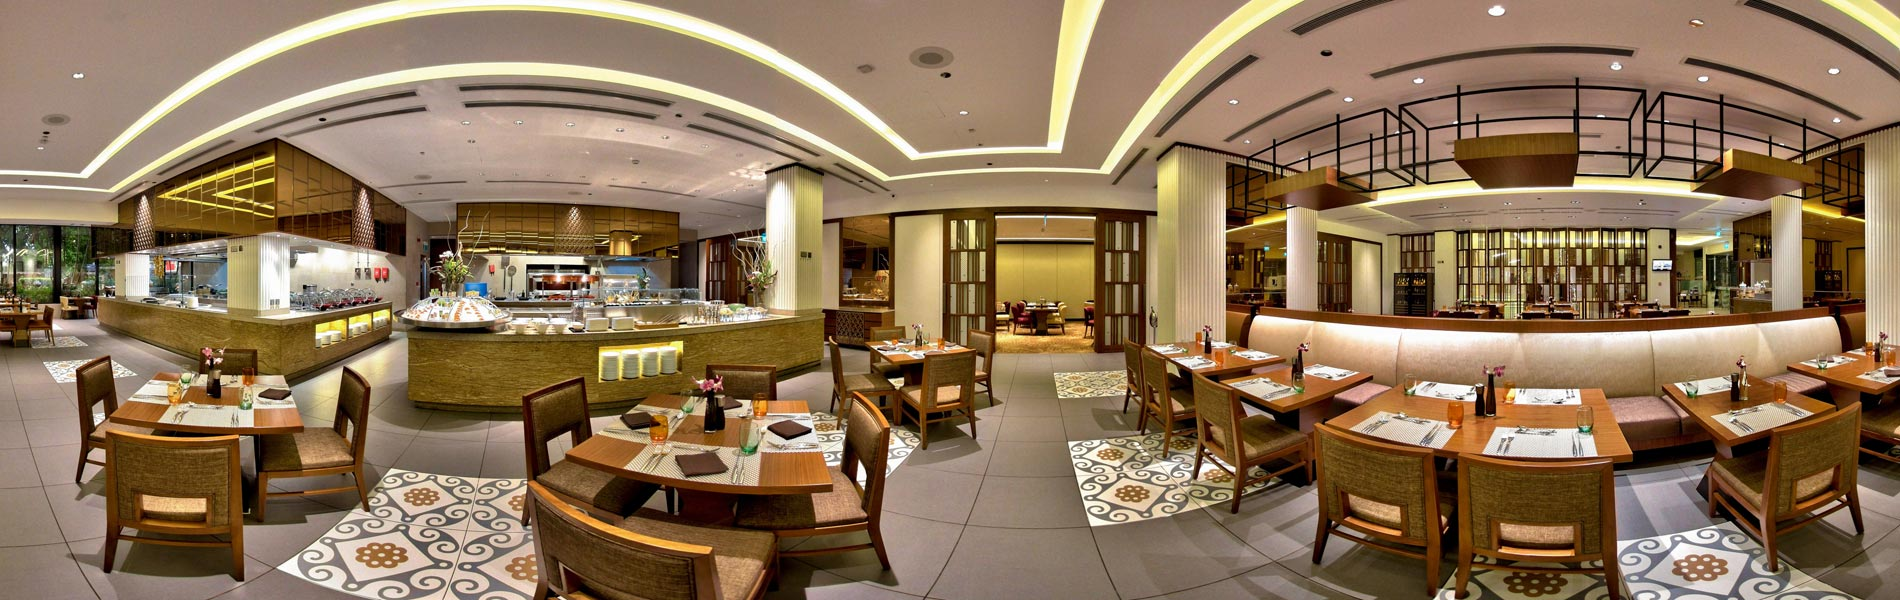 Bright and airy atmosphere in this restaurant for 168 guests